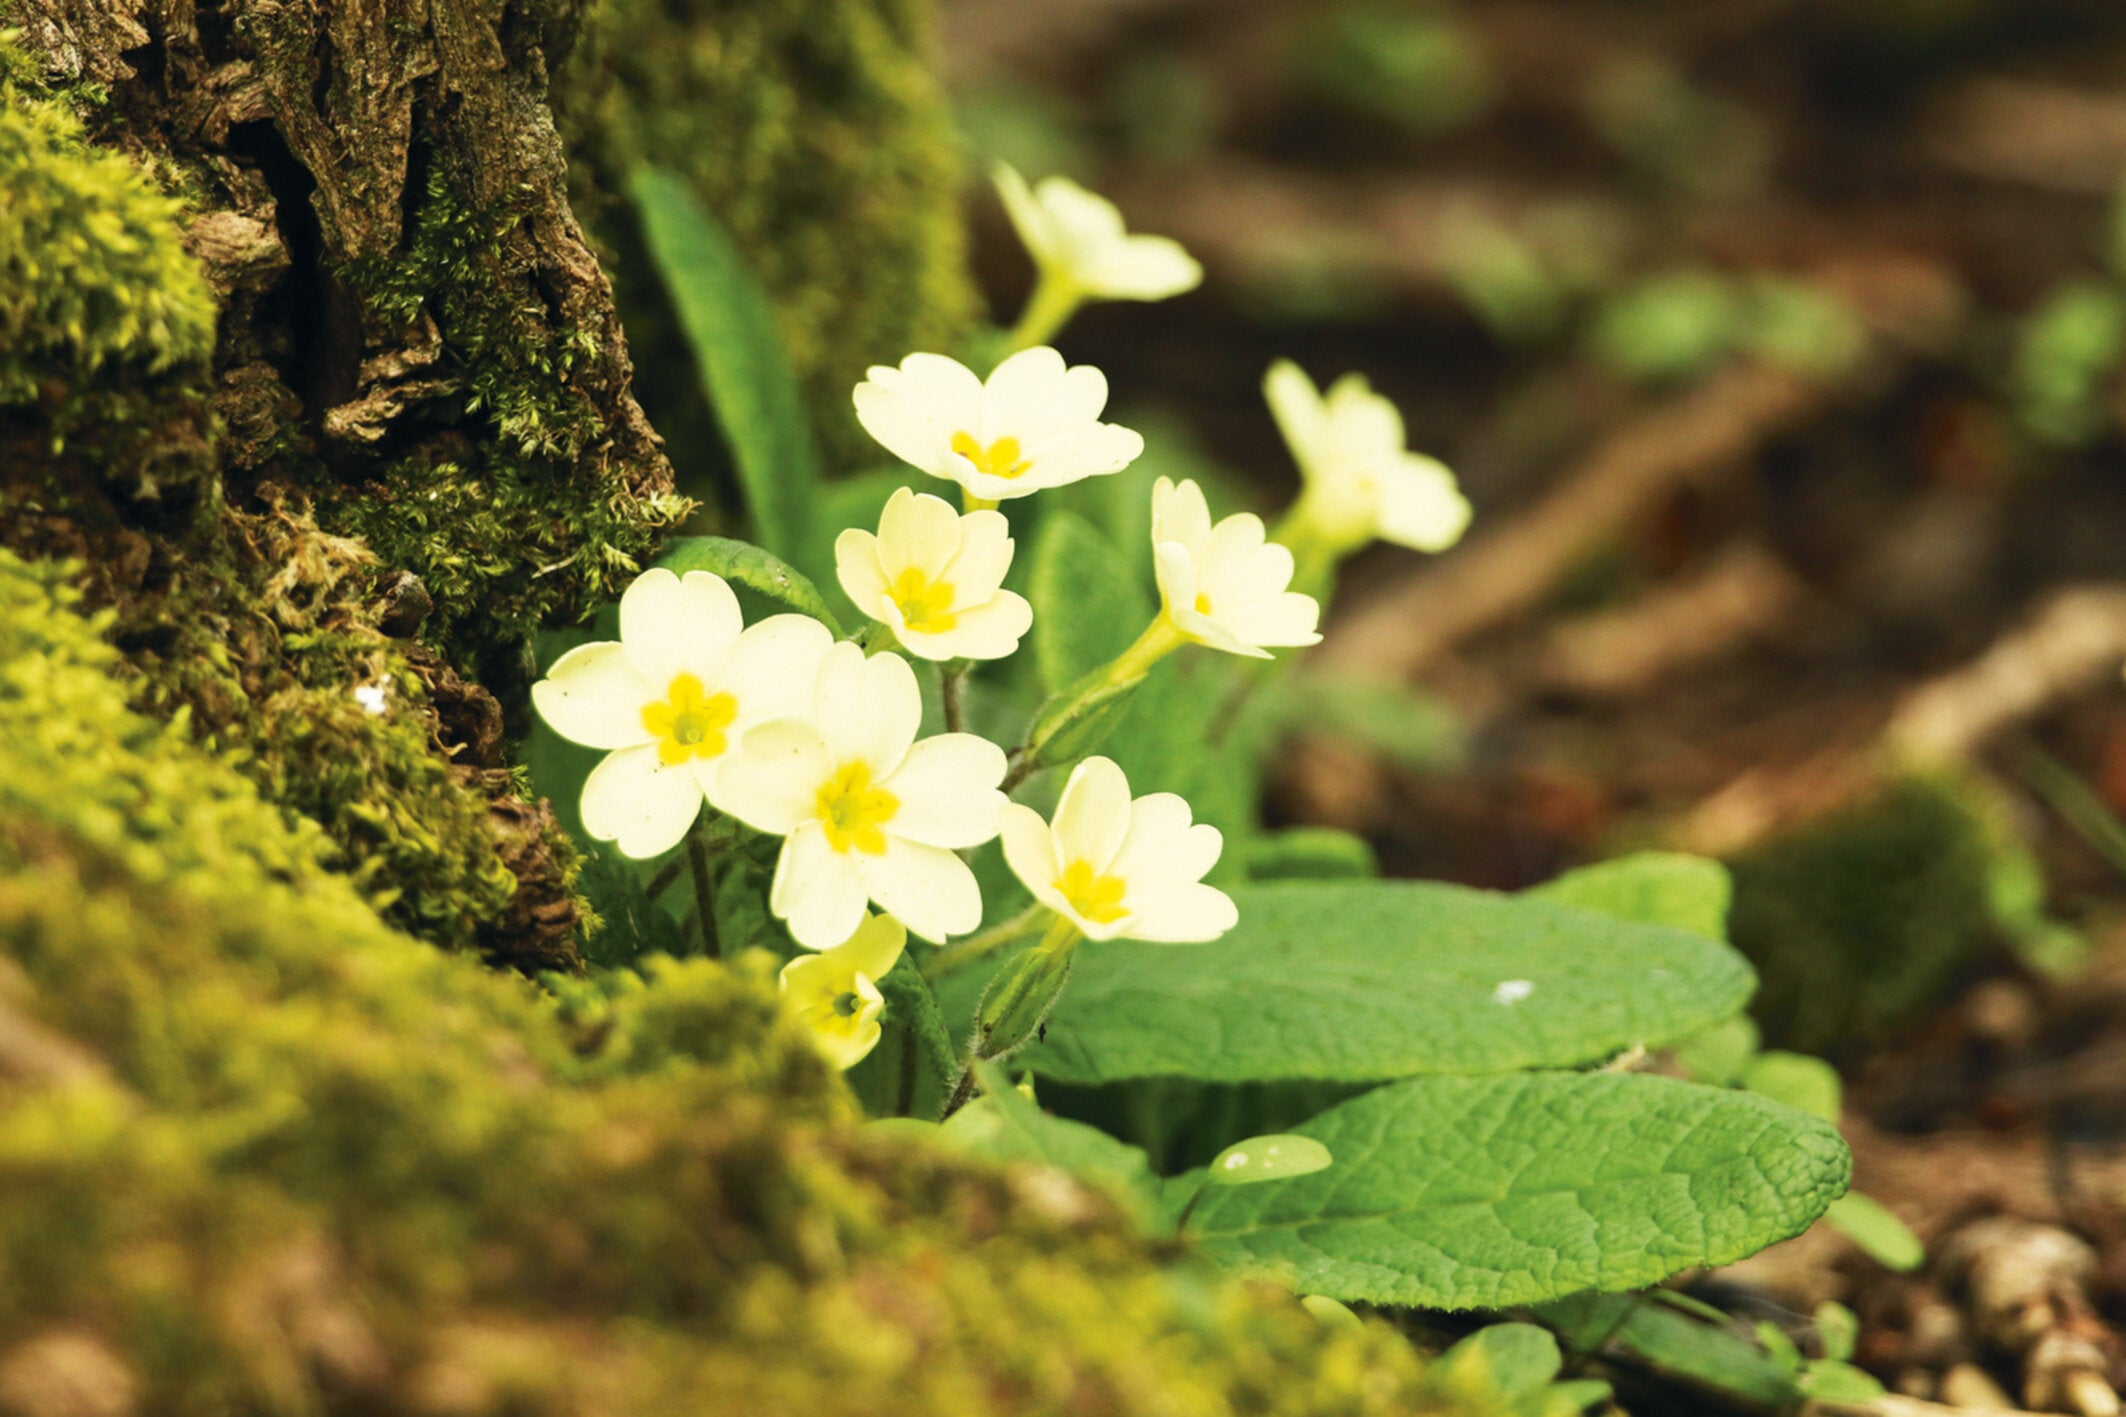 Some look to their calendars for the start of spring – but I see it in a clump of yellow primulas